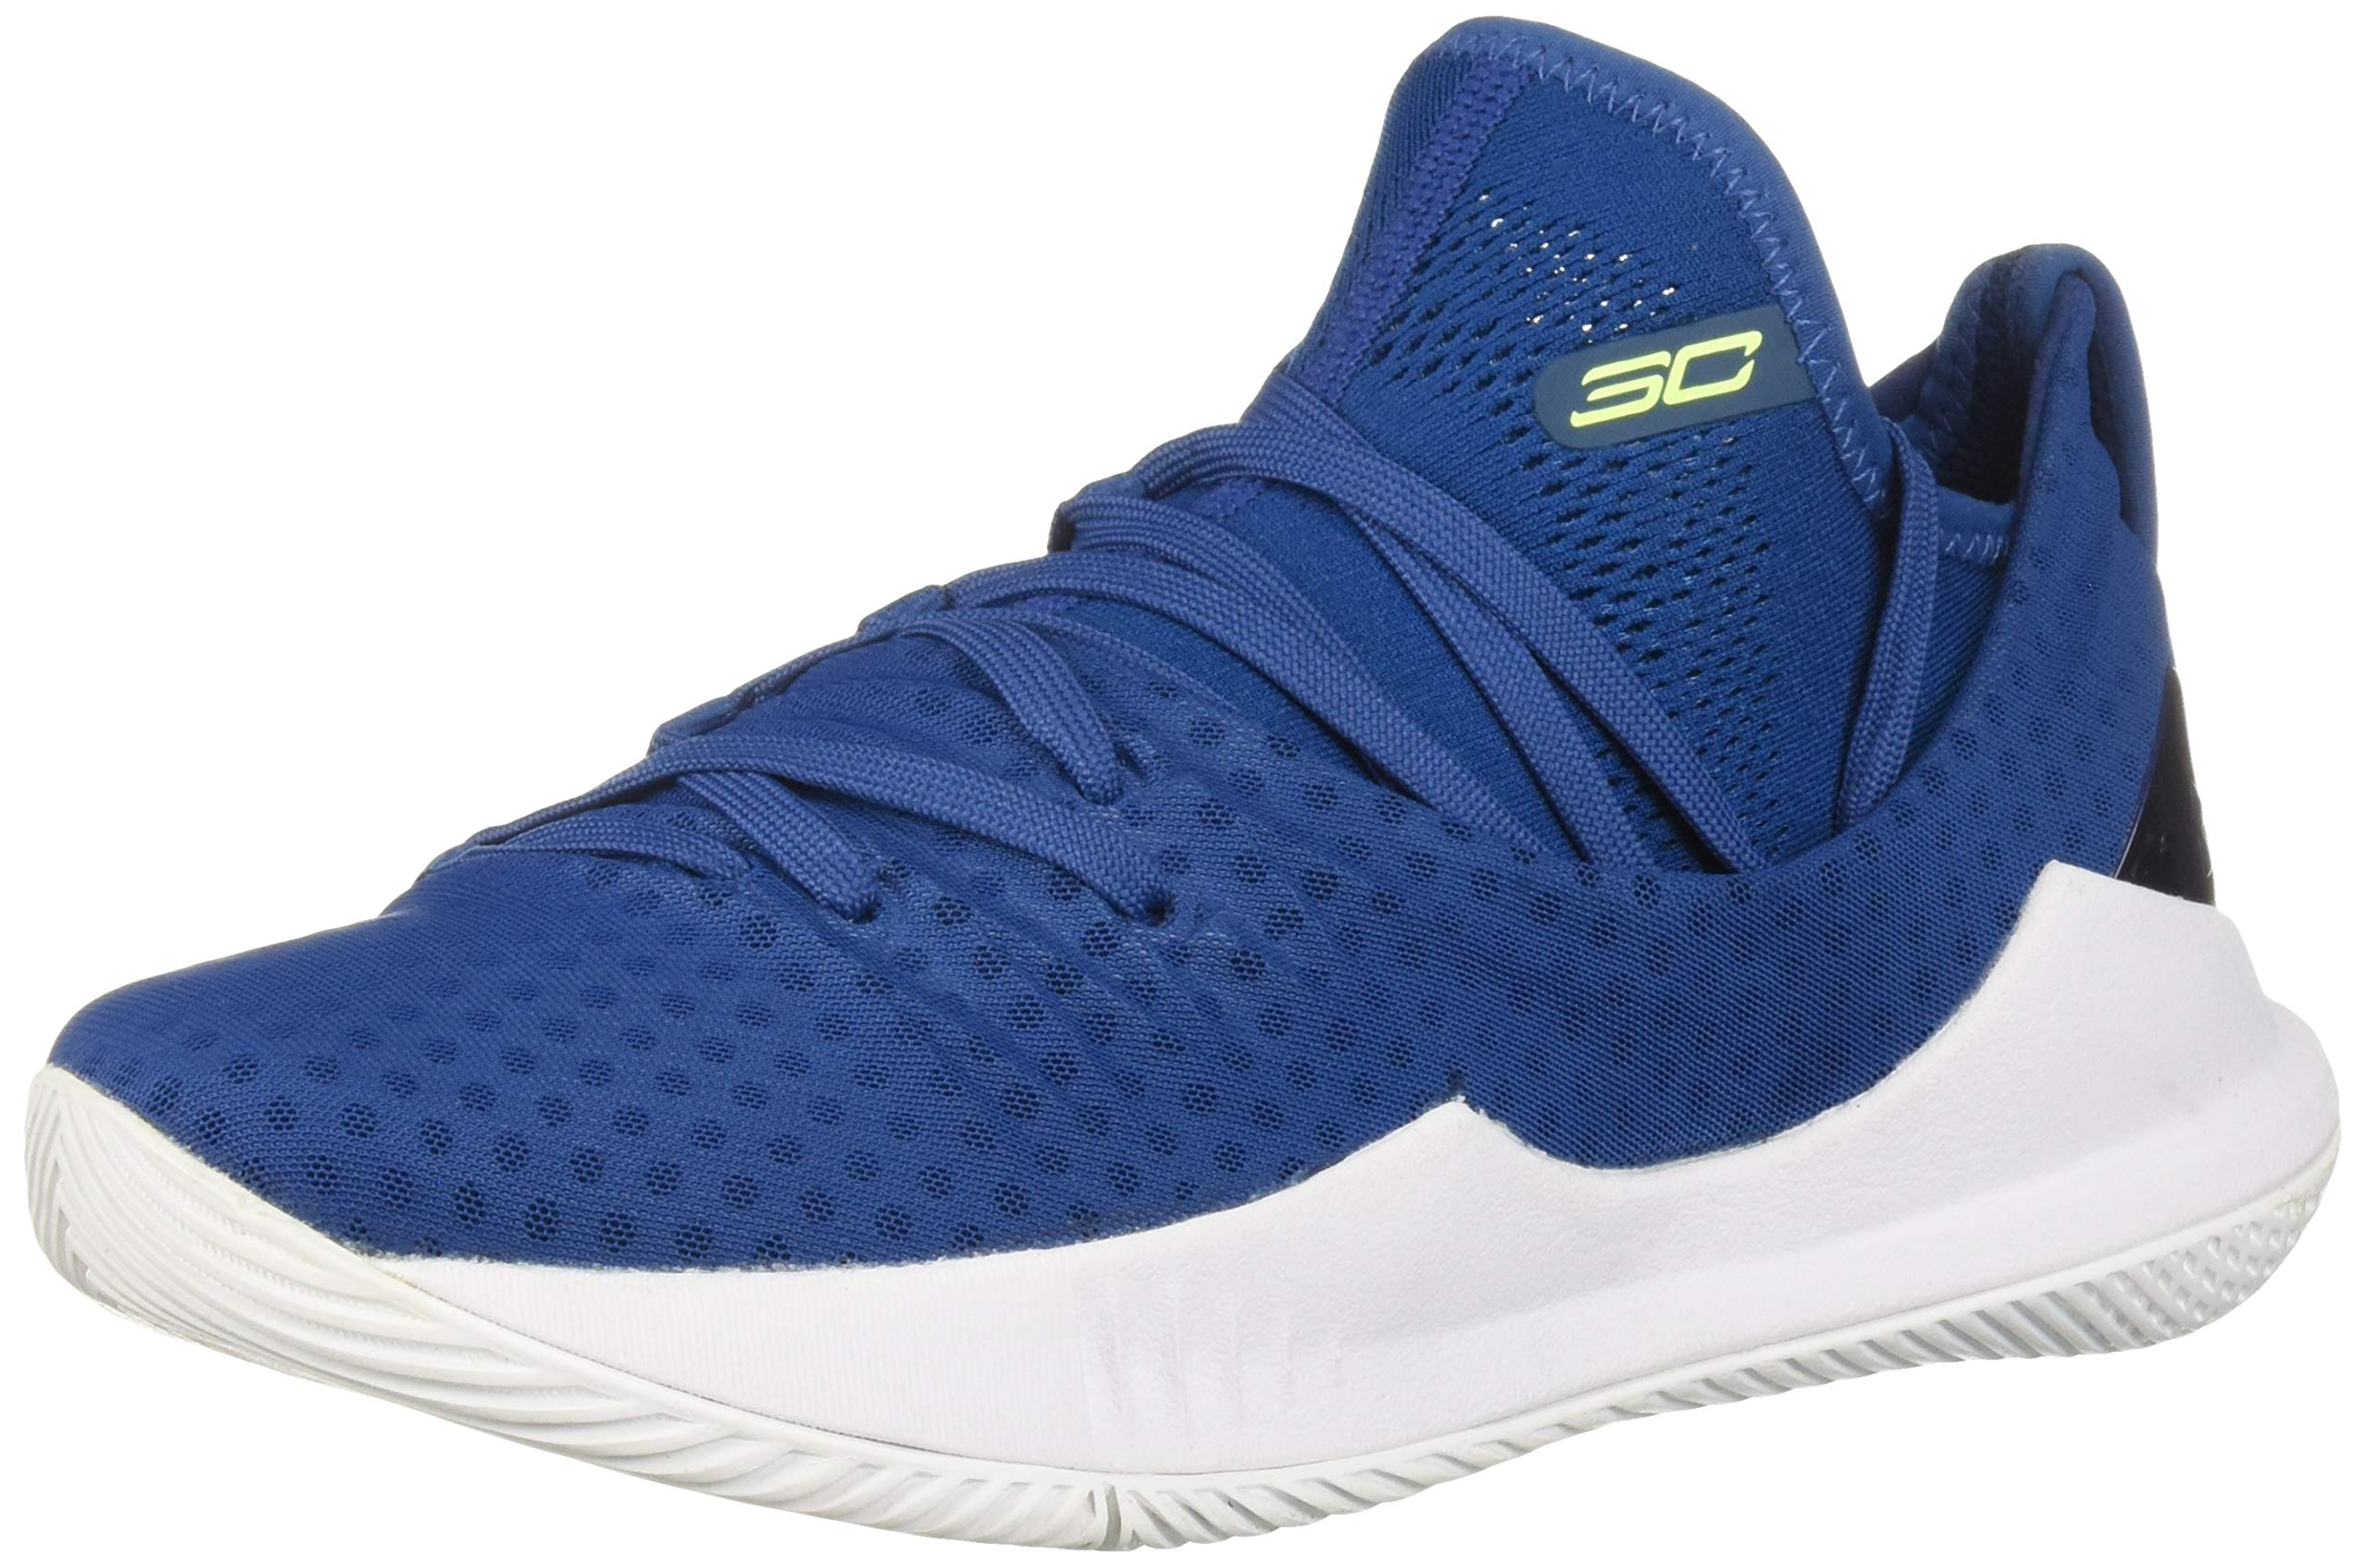 Under Armour Boys' Grade School Curry 5 Basketball Shoe Moroccan Blue (401)/White 4